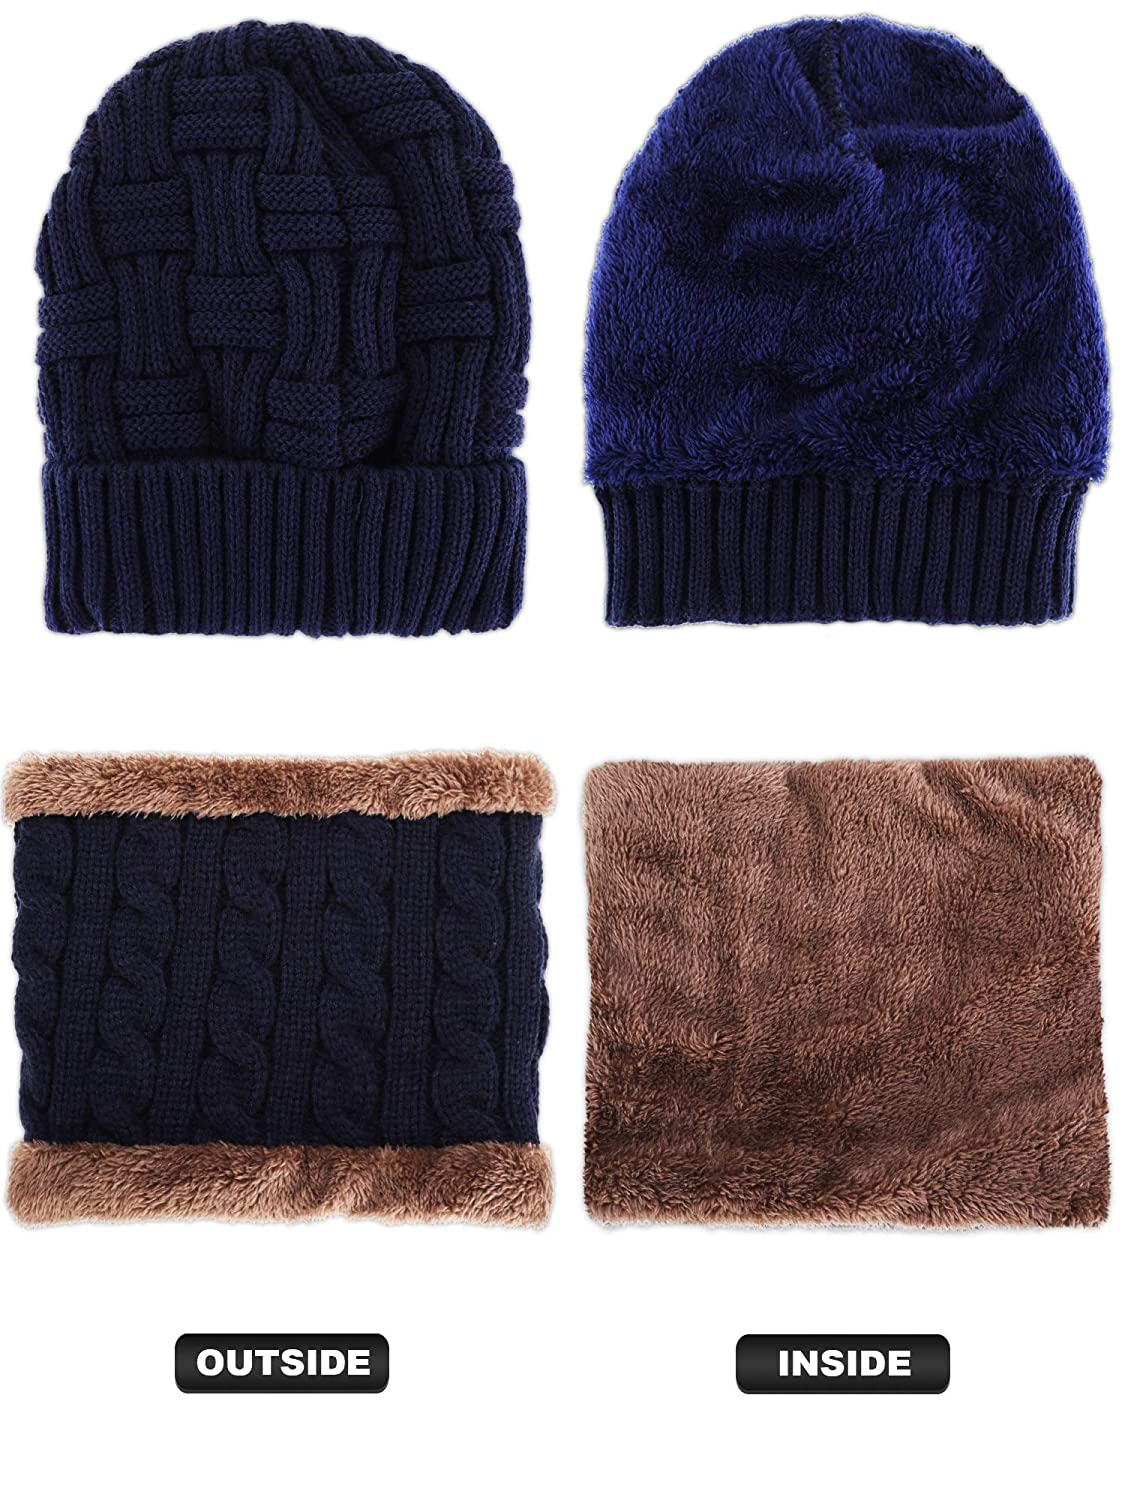 Set 11 4 Pieces Ski Warm Set includes Winter Hat Scarf Warmer Gloves Winter Outdoor Earmuffs for Adults Kids